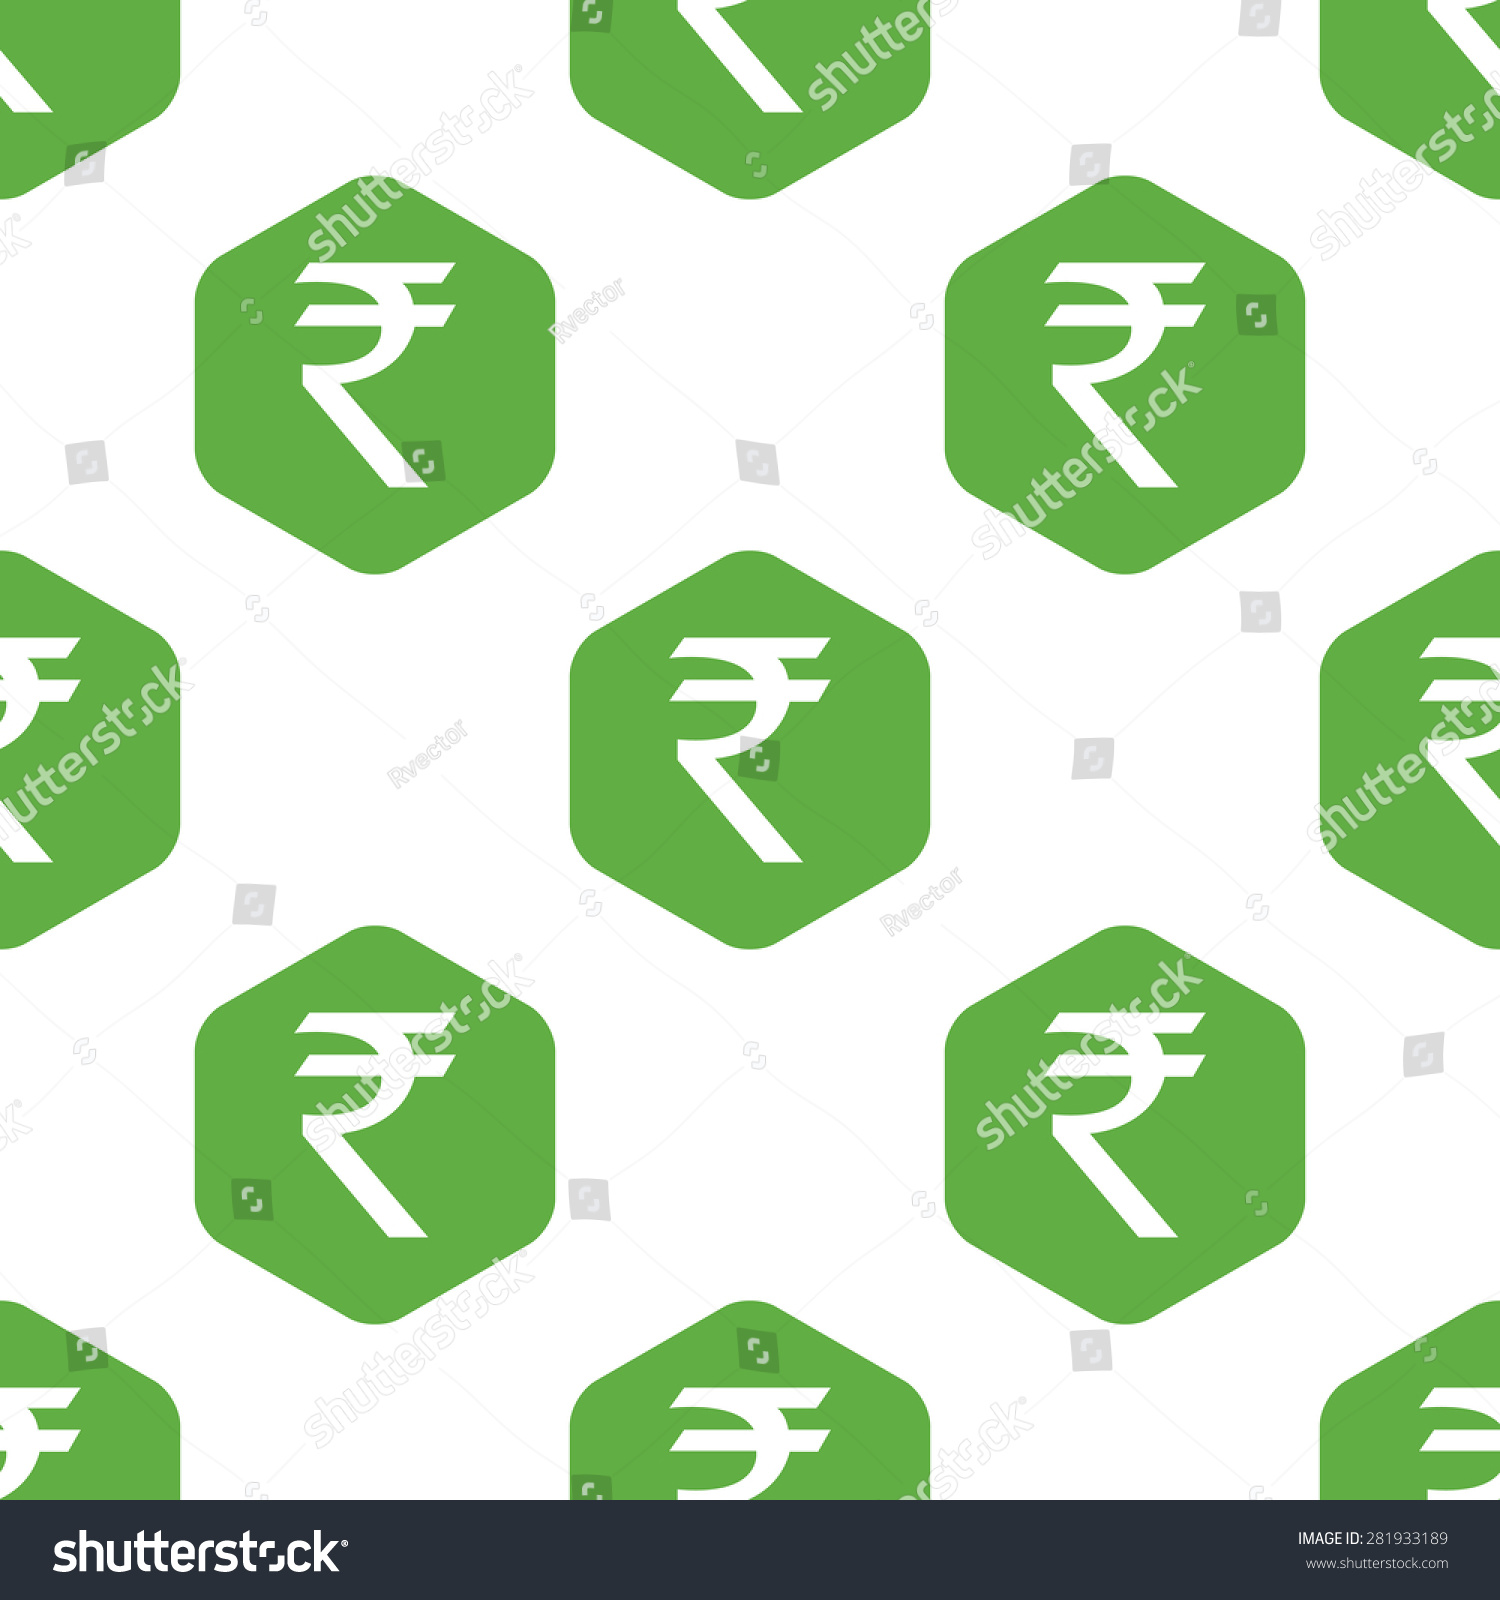 Symbol Indian Rupee Octagon Repeated On Stock Illustration 281933189